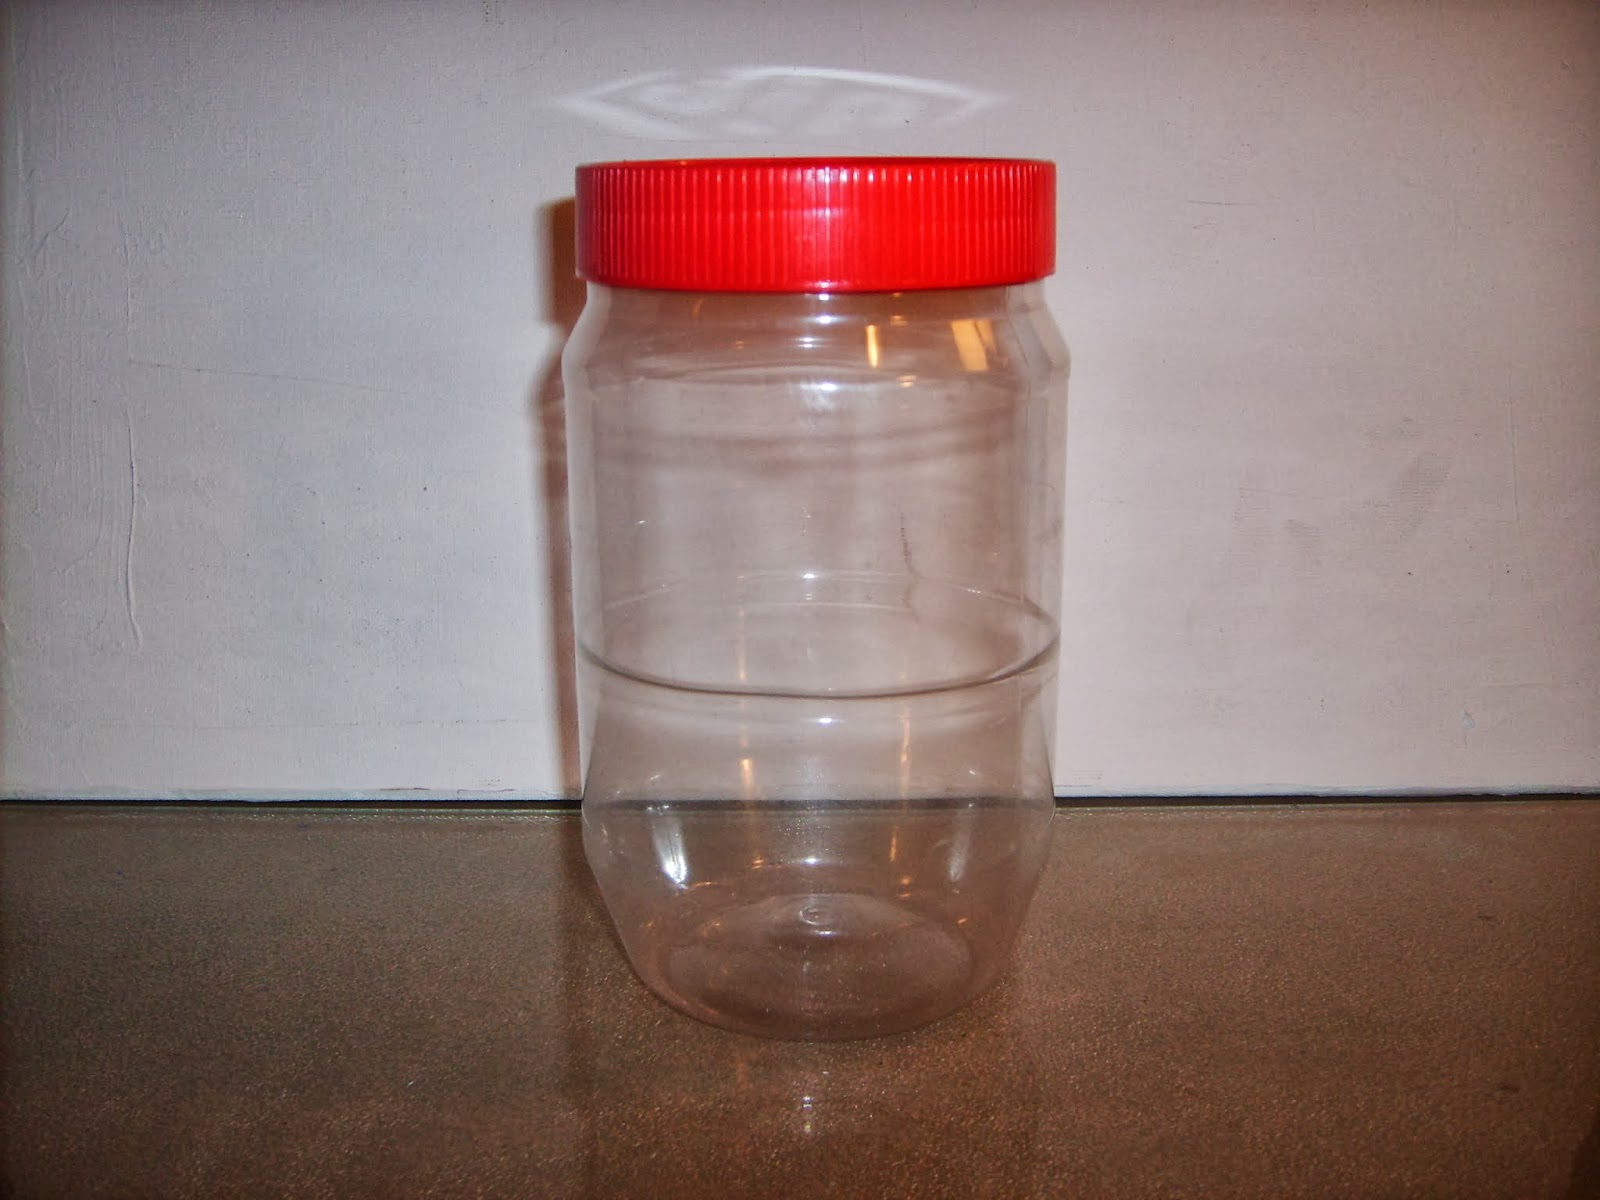 95cd9c75c36d Heartedly Handcrafted: Repurpose: A Plastic Jar for Decorative Craft ...